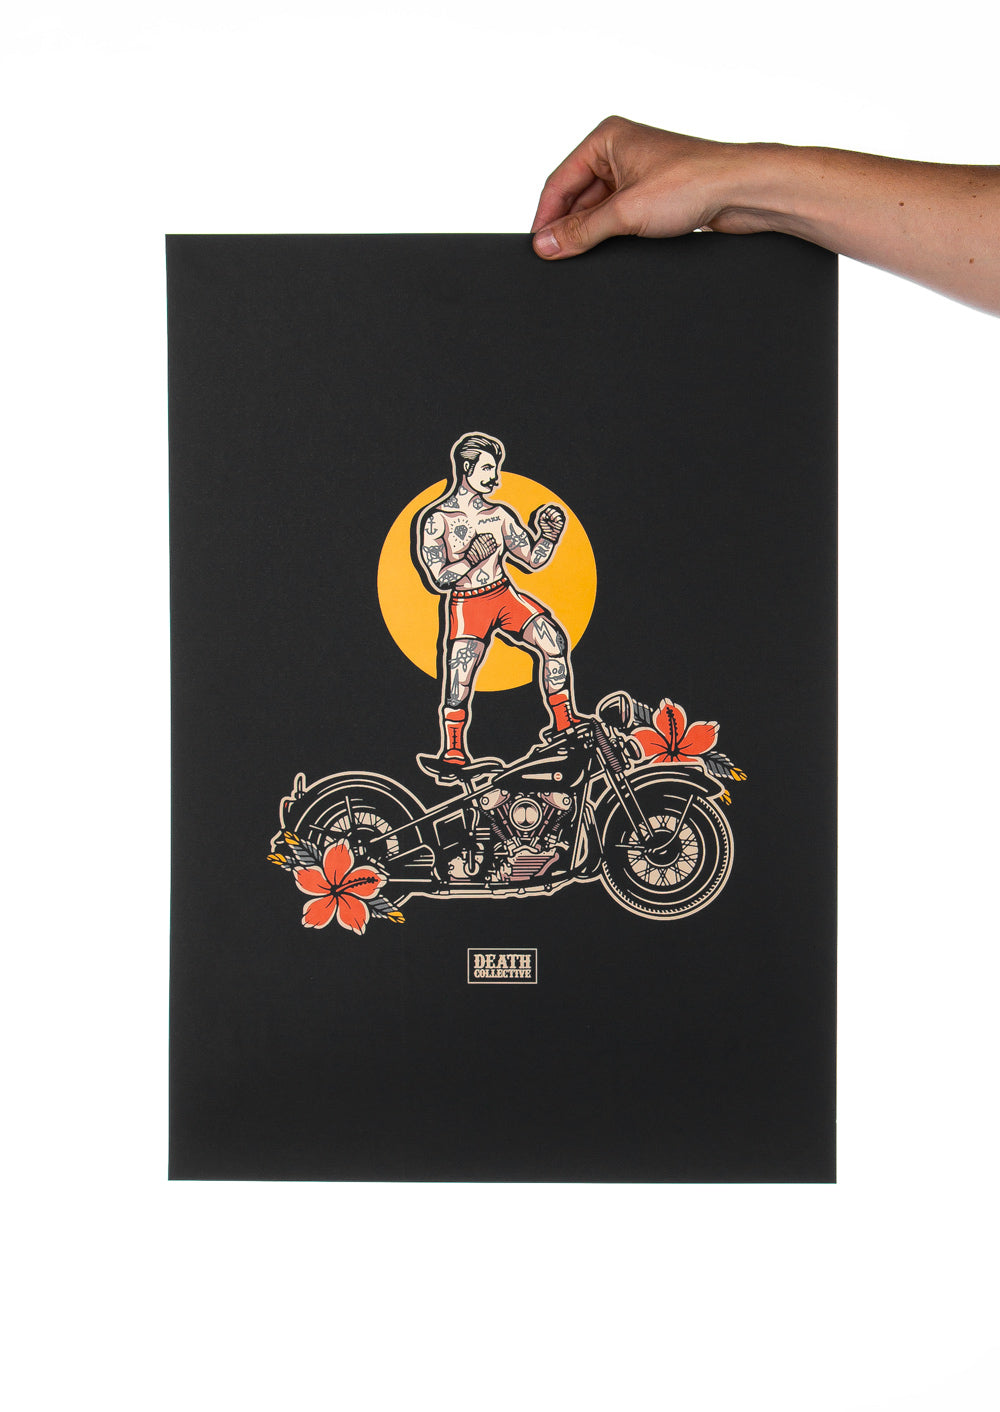 'Knuckle' Screen Printed Poster